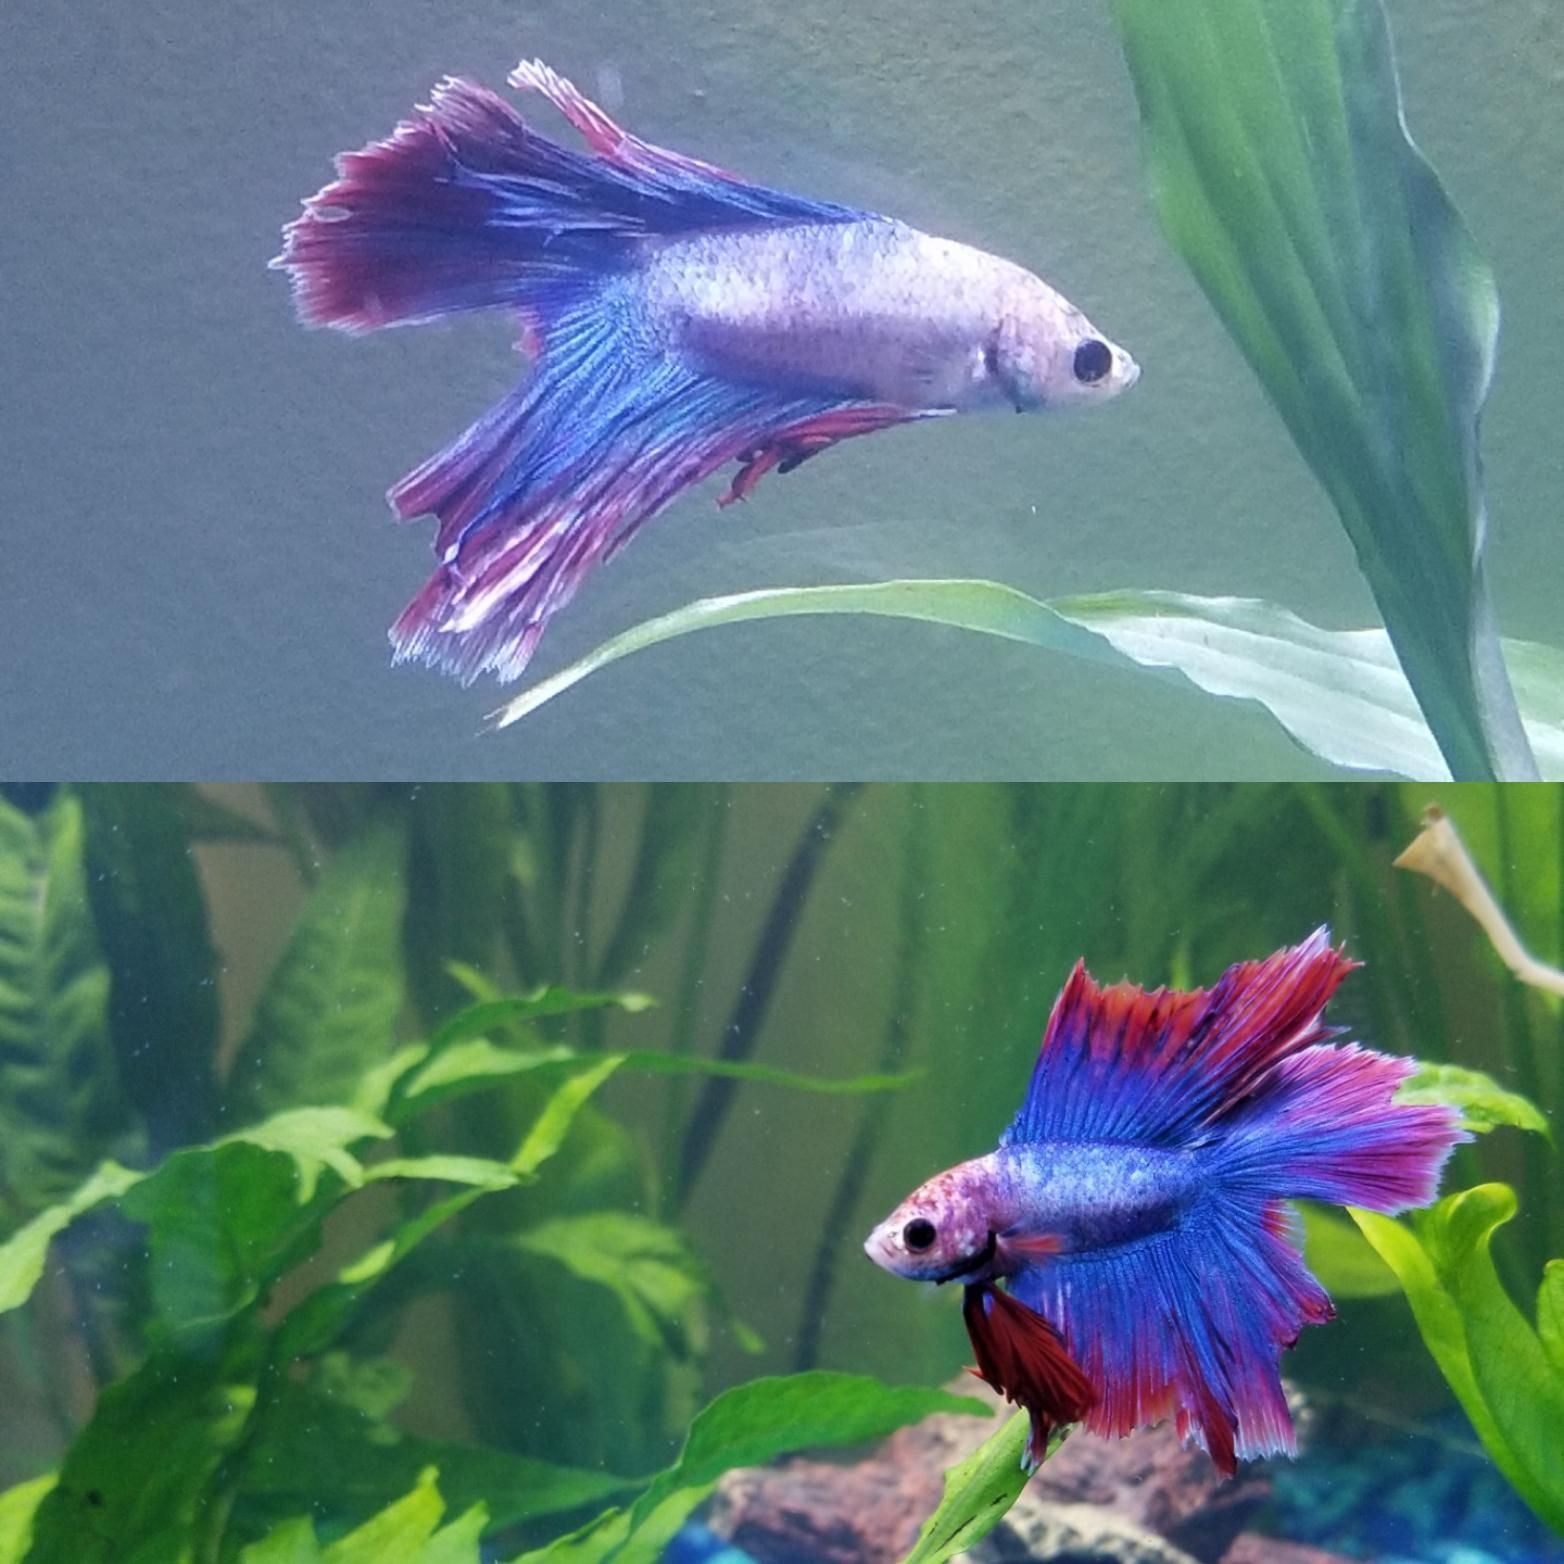 Betta Fish Francis Is Looking So Much Better Than A Few Weeks Ago I Still Feel Like He May Be Nipping Does Anyone Have Any Advice On L Betta Fish Betta